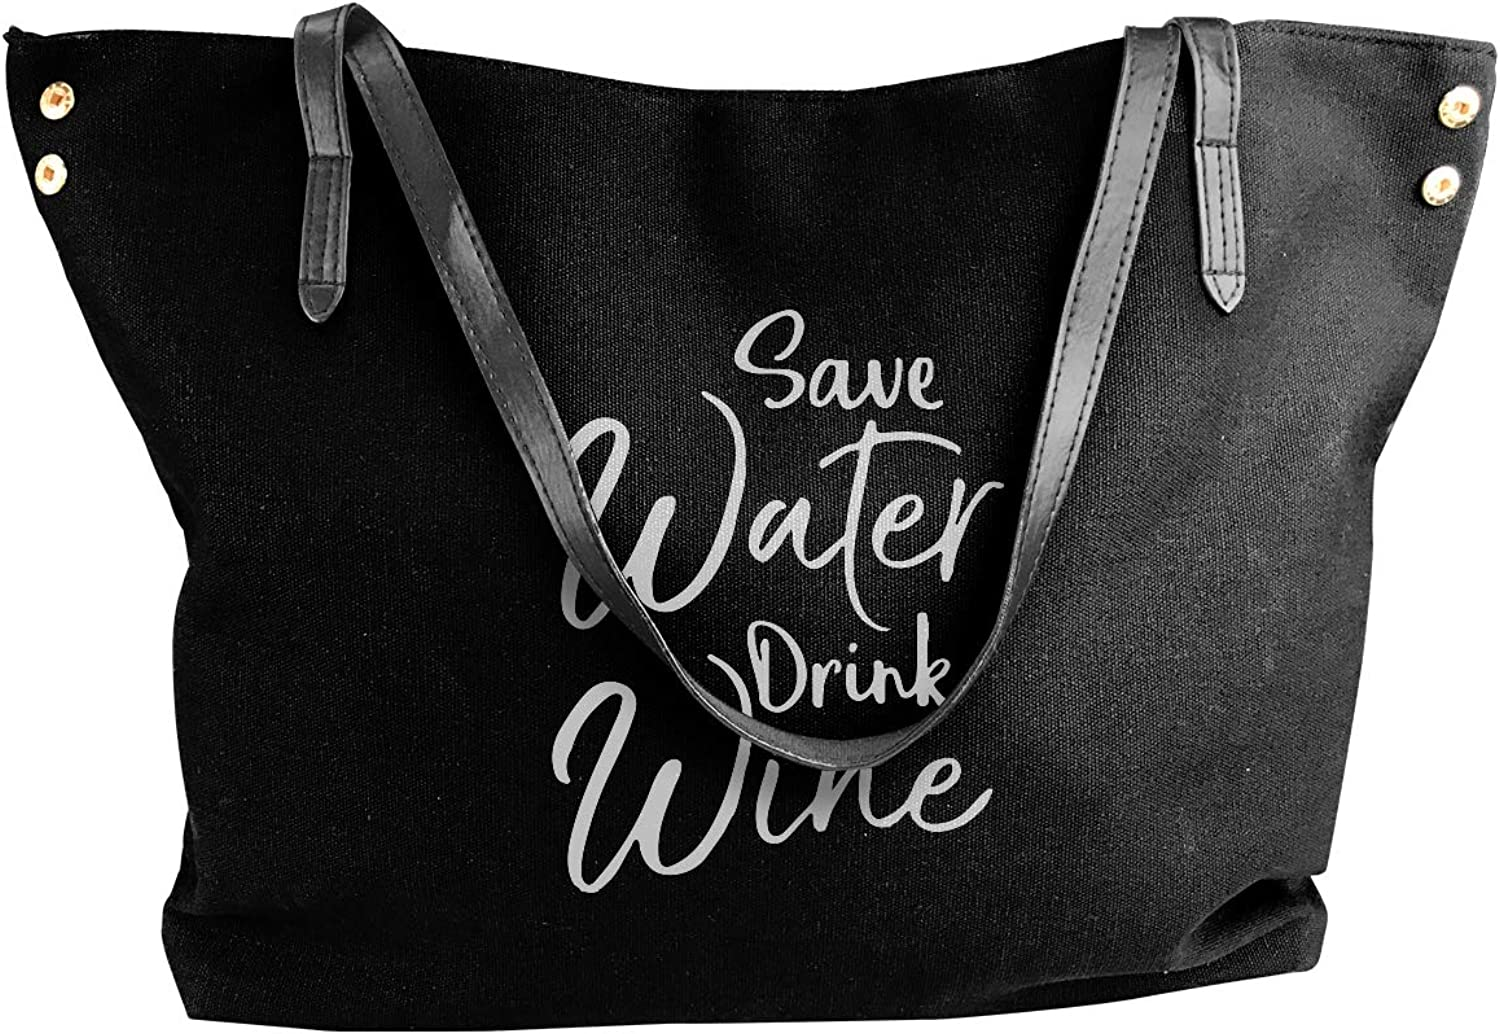 Save Water Drink Wine Women'S Casual Canvas Sling Bag For Work Shoulder Tote